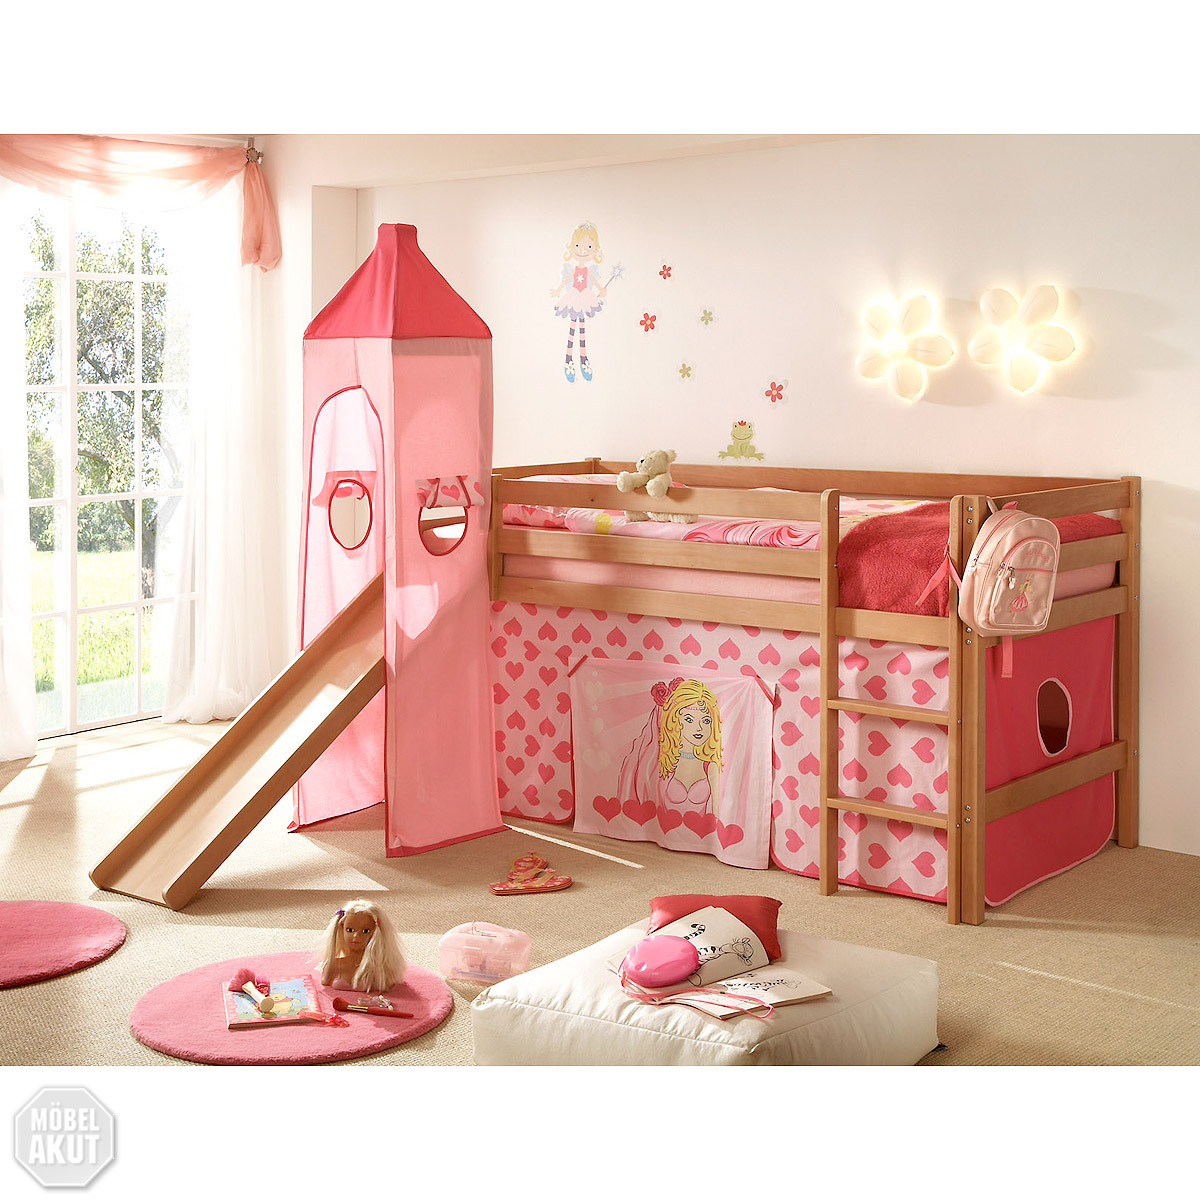 hochbett snoopy kinderbett etagenbett in buche massiv. Black Bedroom Furniture Sets. Home Design Ideas